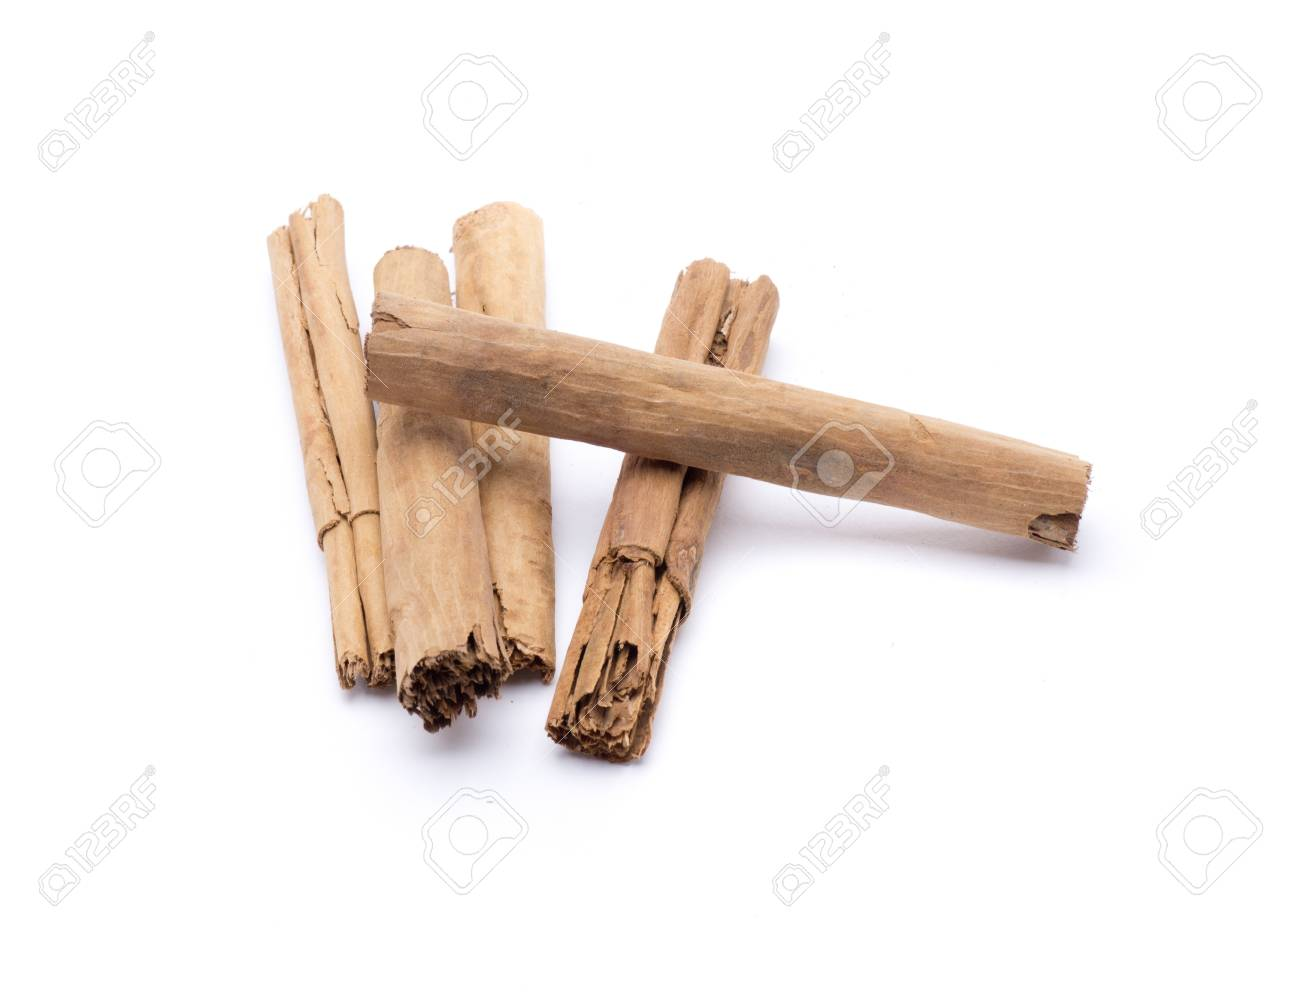 several cinnamon sticks naturally to flavor foods Stock Photo - 18514911